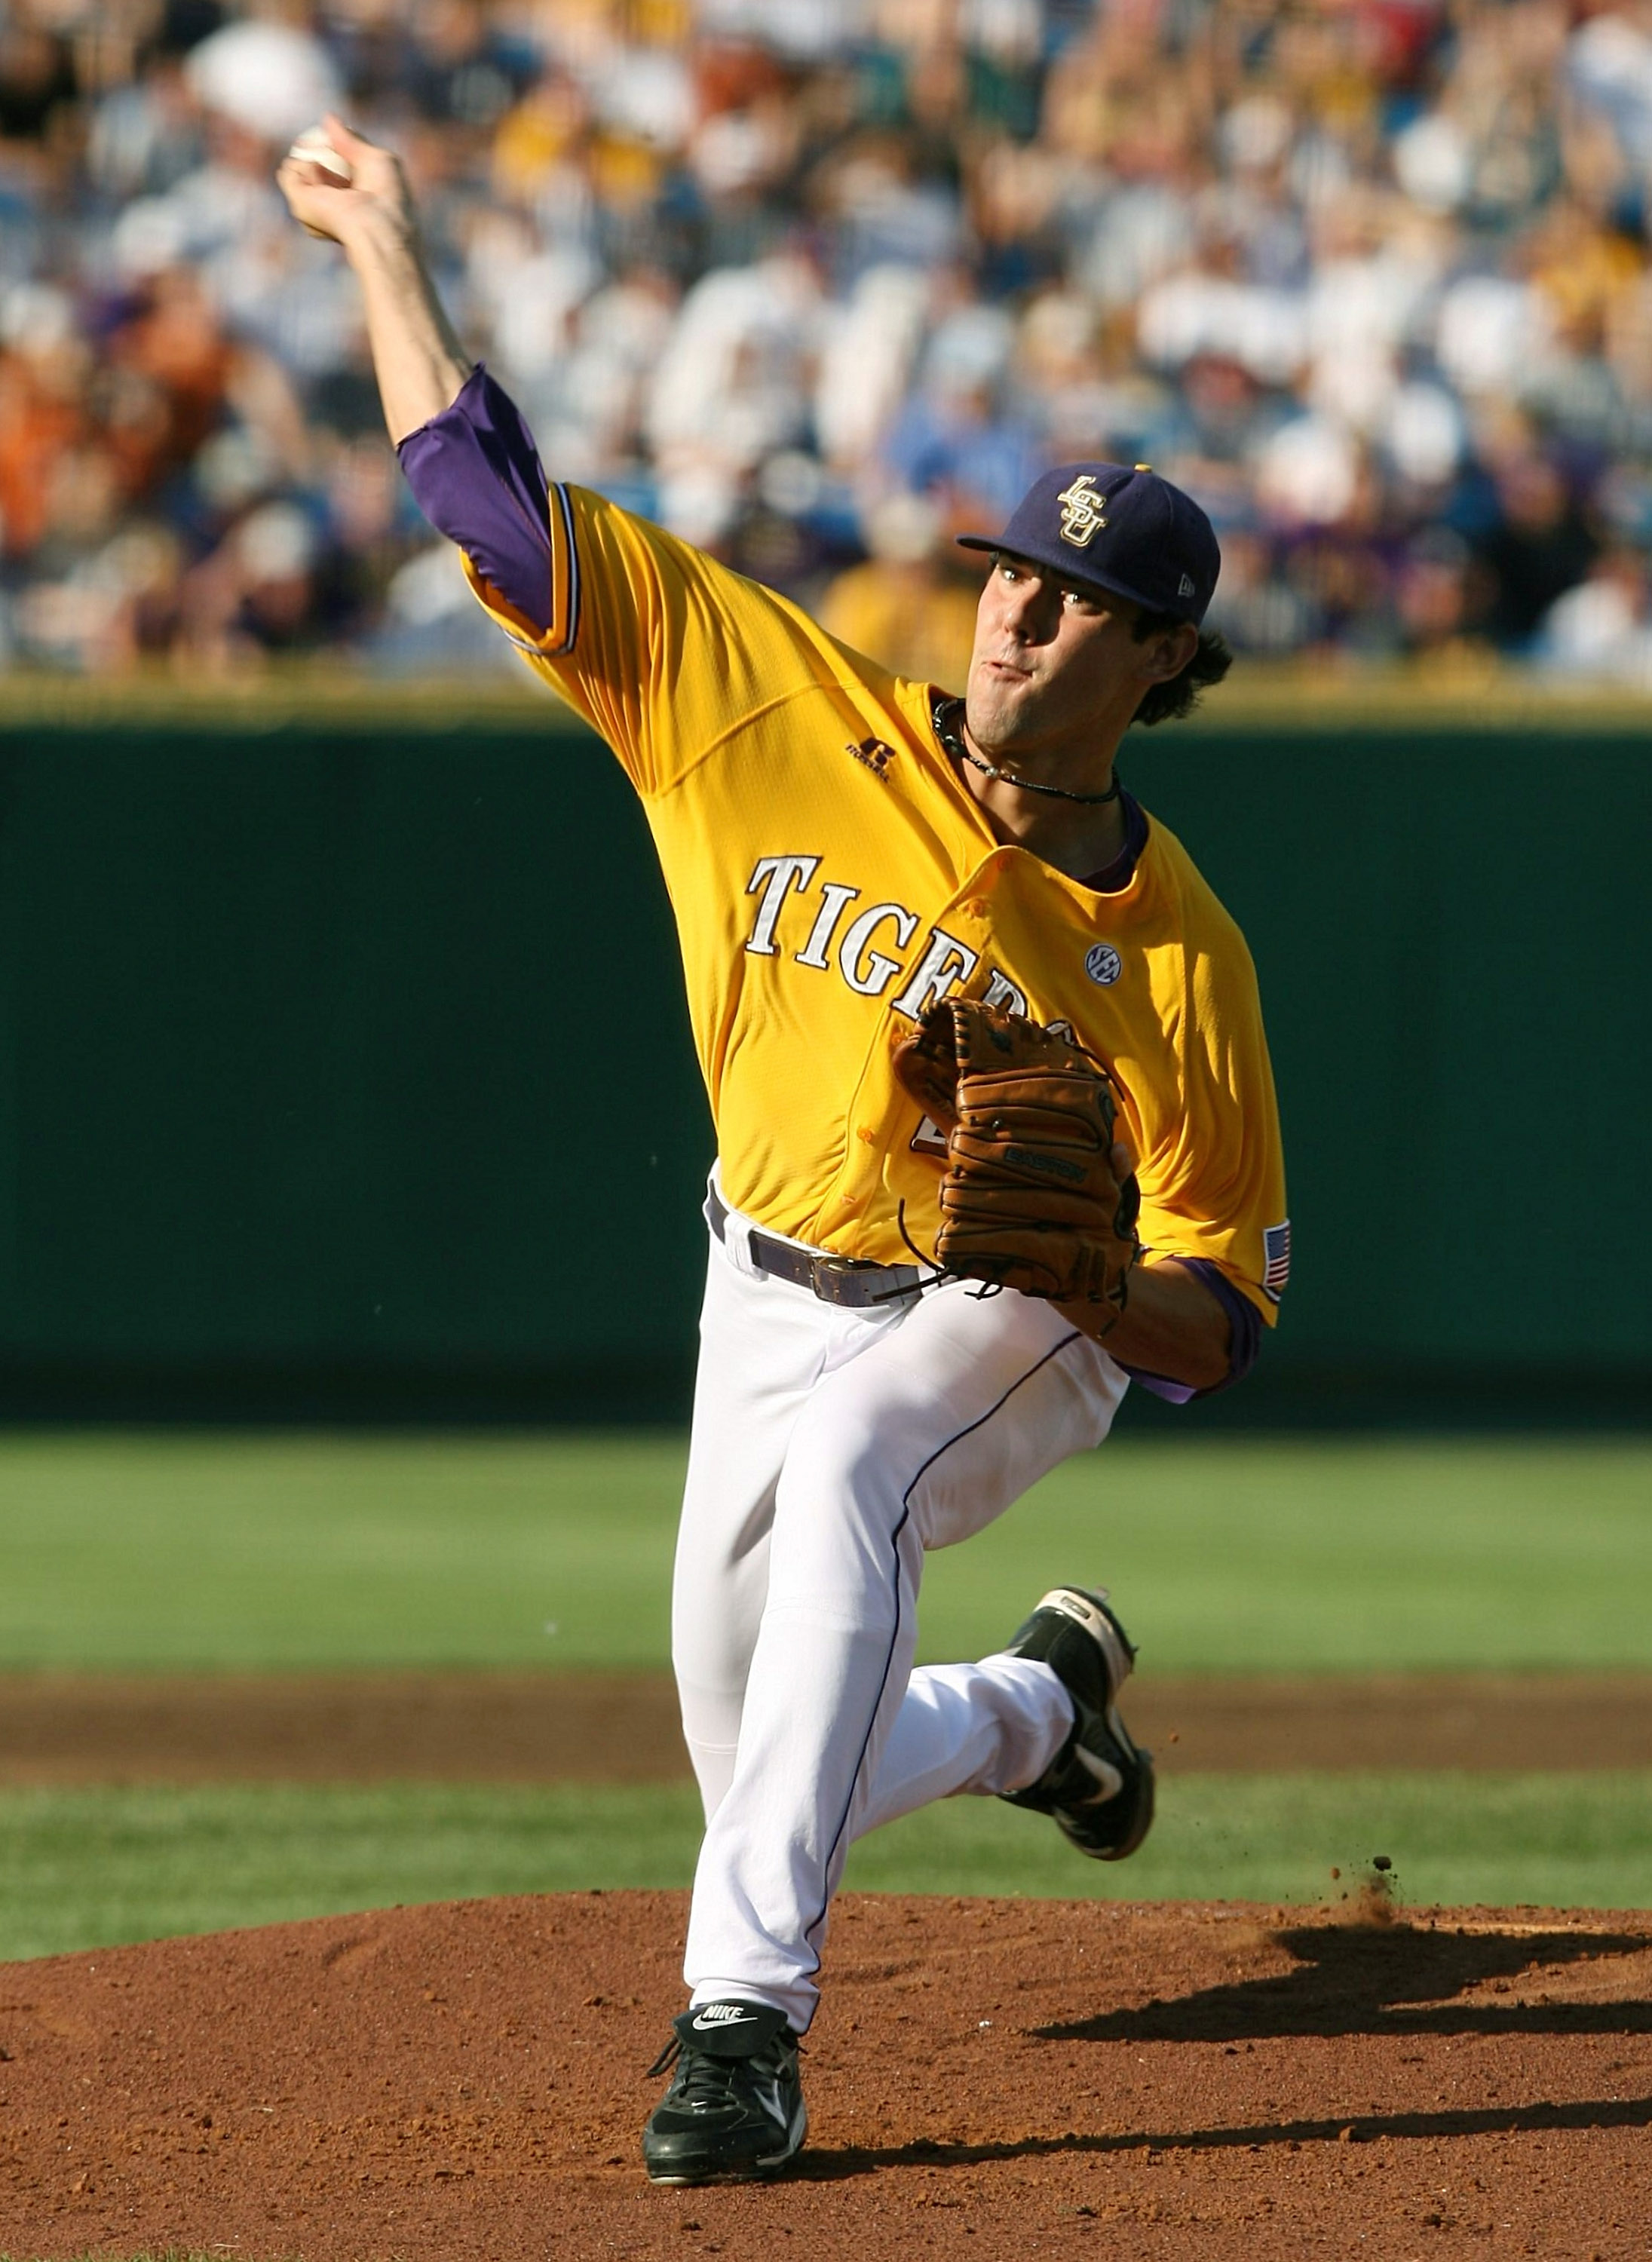 OMAHA, NE - JUNE 24:  Pitcher Anthony Ranaudo #23 of the Louisiana State University Tigers pitches in the first inning against the Texas Longhorns during Game 3 of the 2009 NCAA College World Series at Rosenblatt Stadium on June 24, 2009 in Omaha, Nebrask